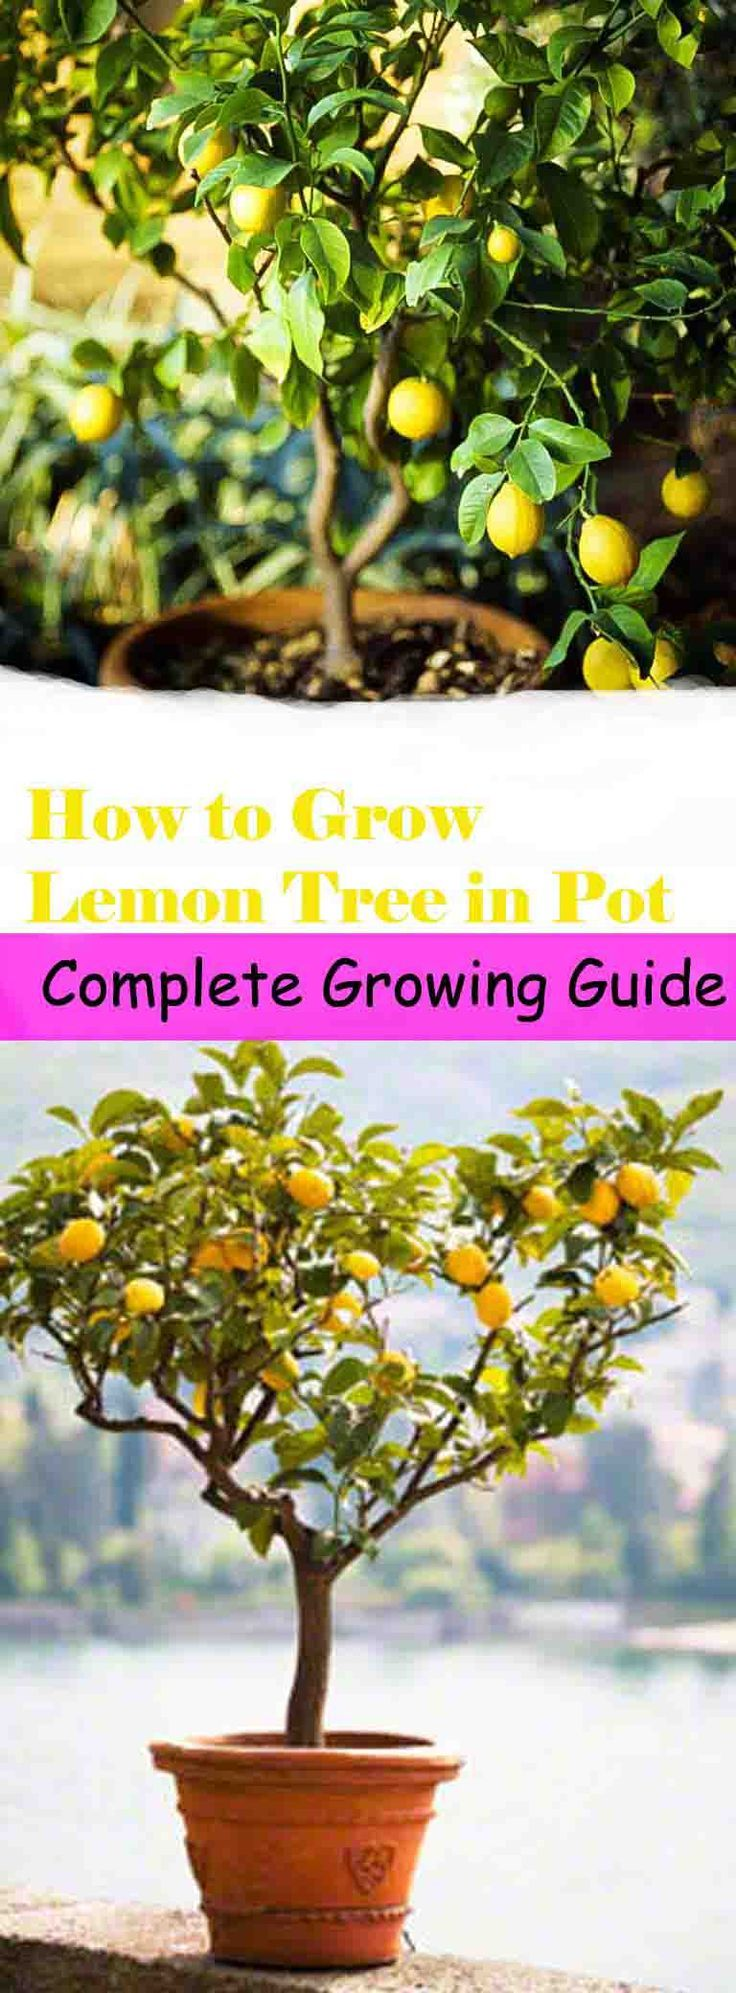 how to grow a lemon tree in a pot gardening tips and. Black Bedroom Furniture Sets. Home Design Ideas